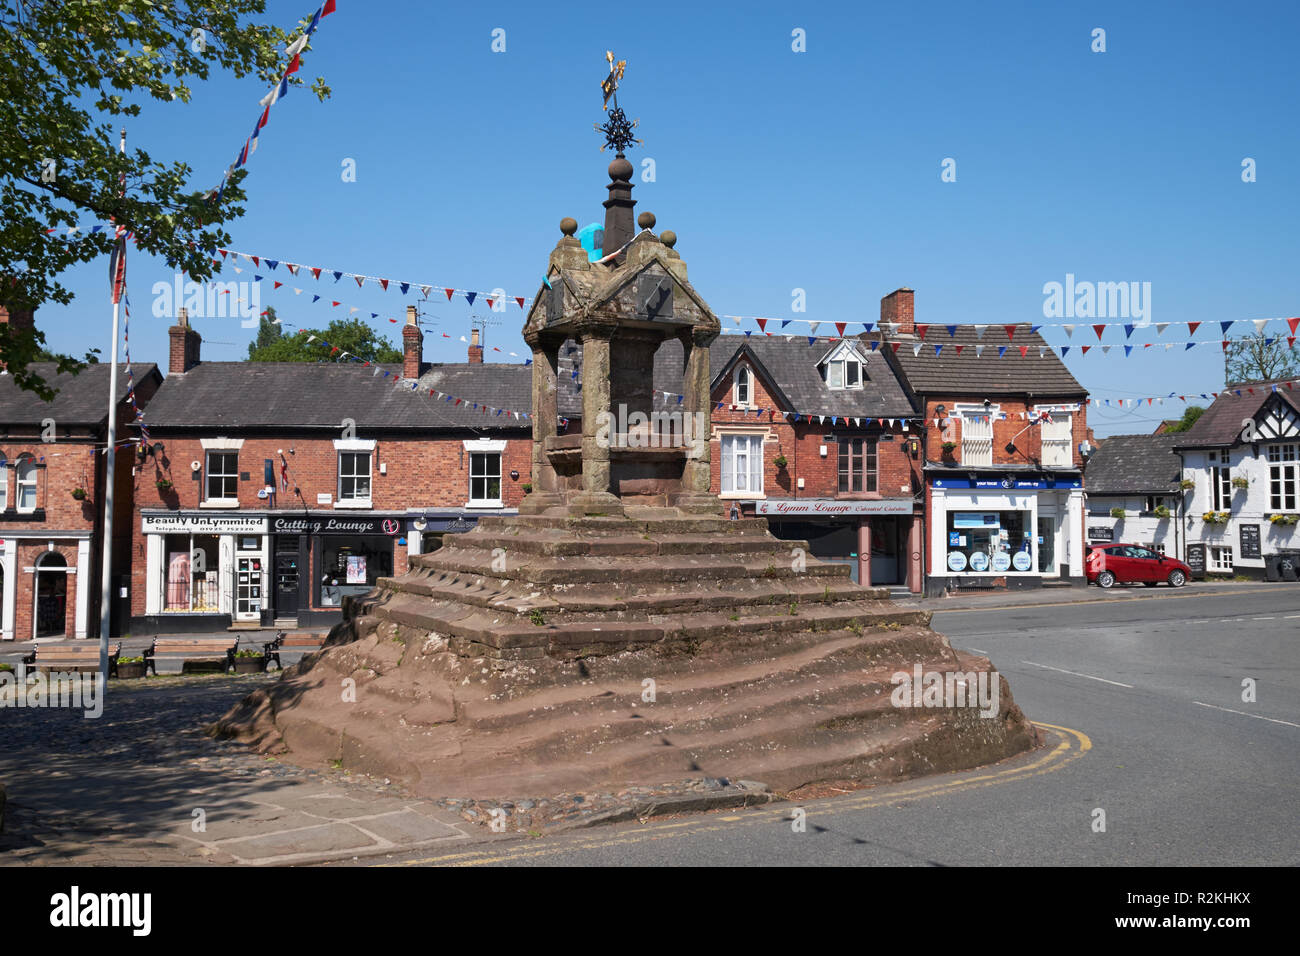 Lymm Cross in the centre of Lymm, Cheshire, UK. - Stock Image